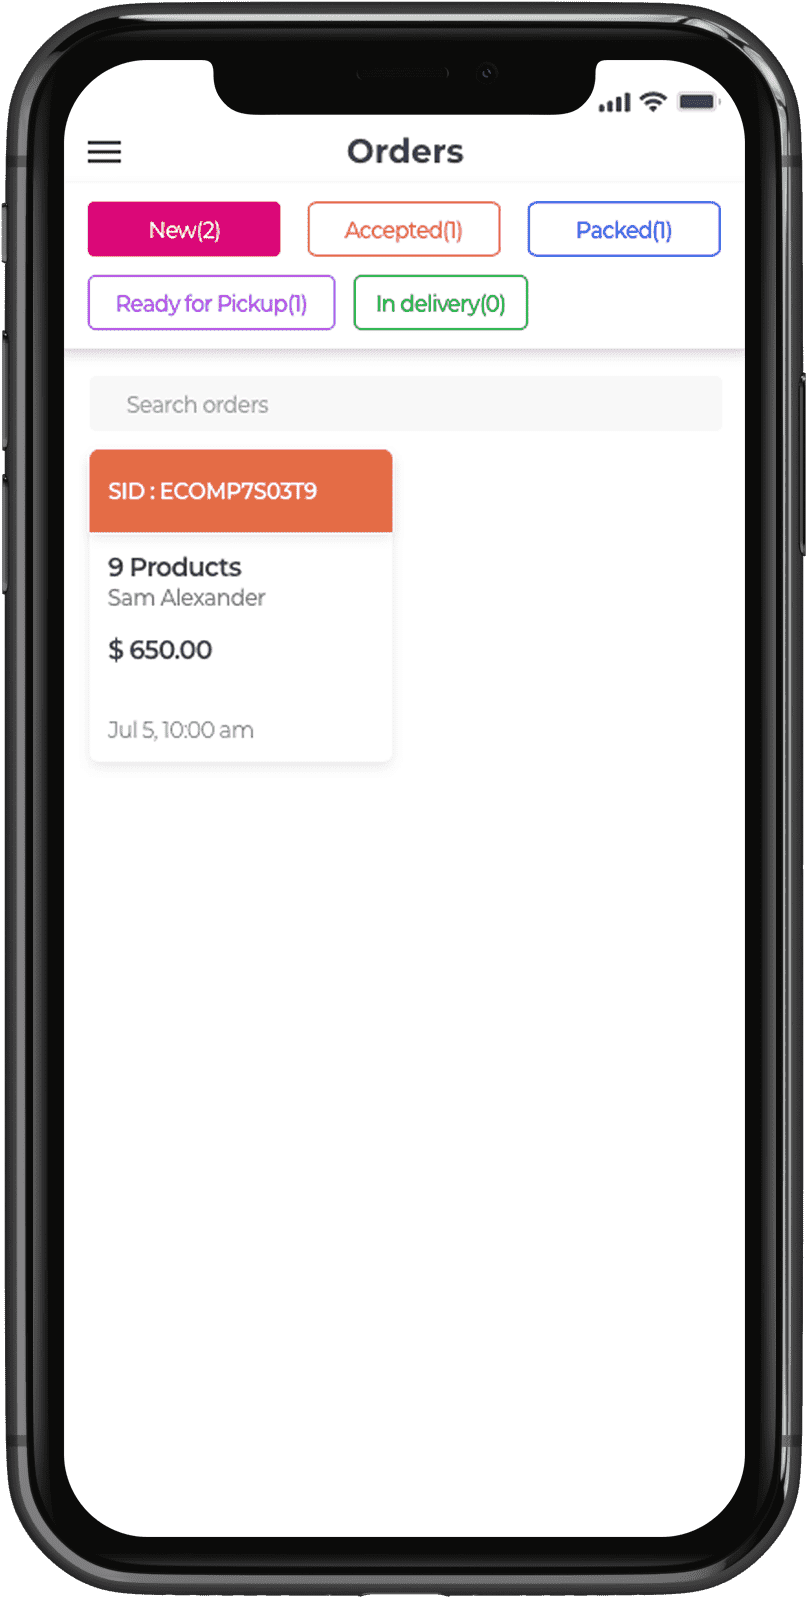 new-order-tab-in-multi-vendor-ecommerce-picker-app.png